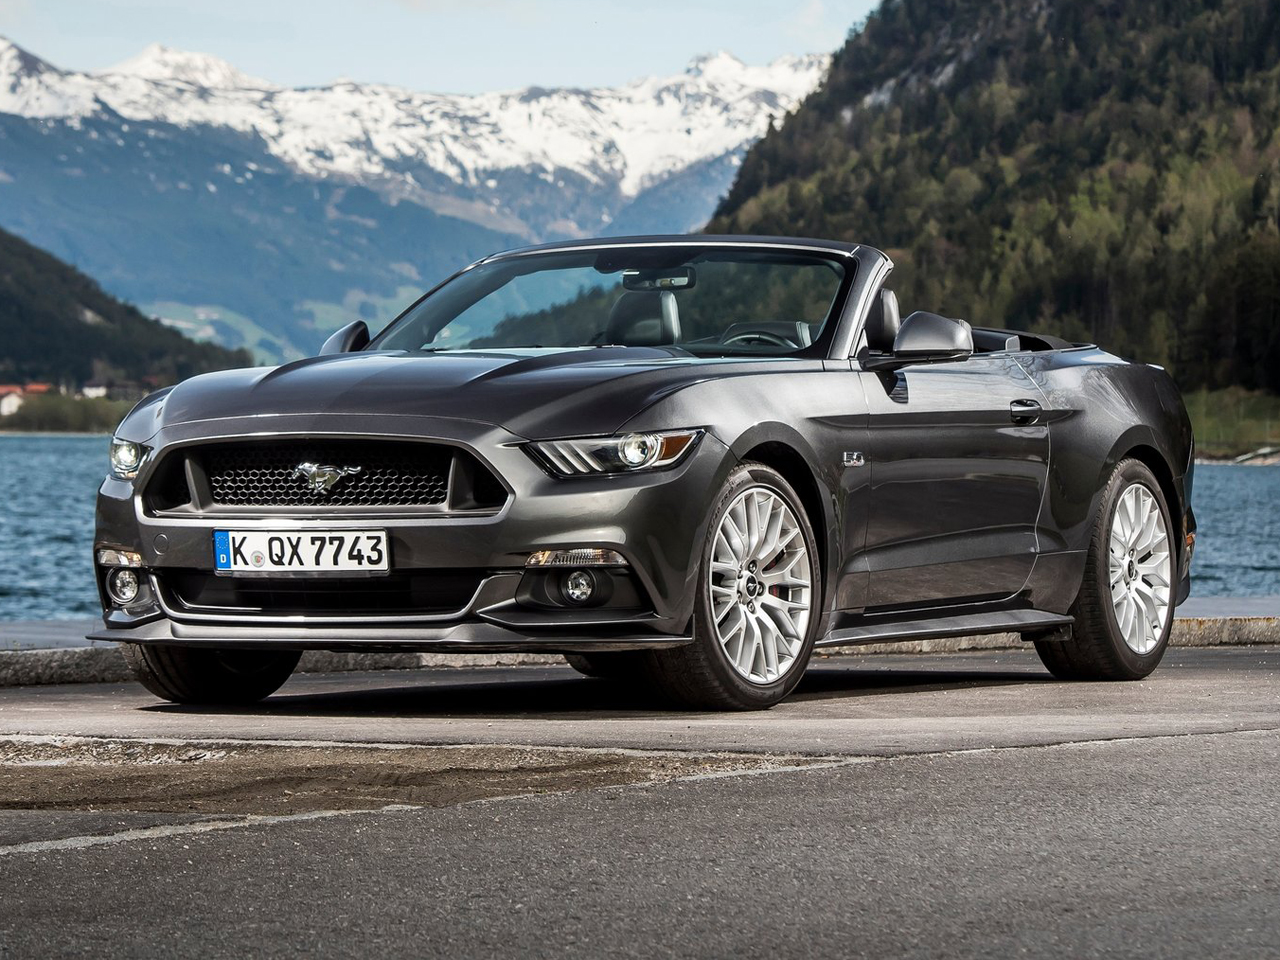 ford mustang convertible 2015 2 3 ecoboost 314cv autom tico. Black Bedroom Furniture Sets. Home Design Ideas